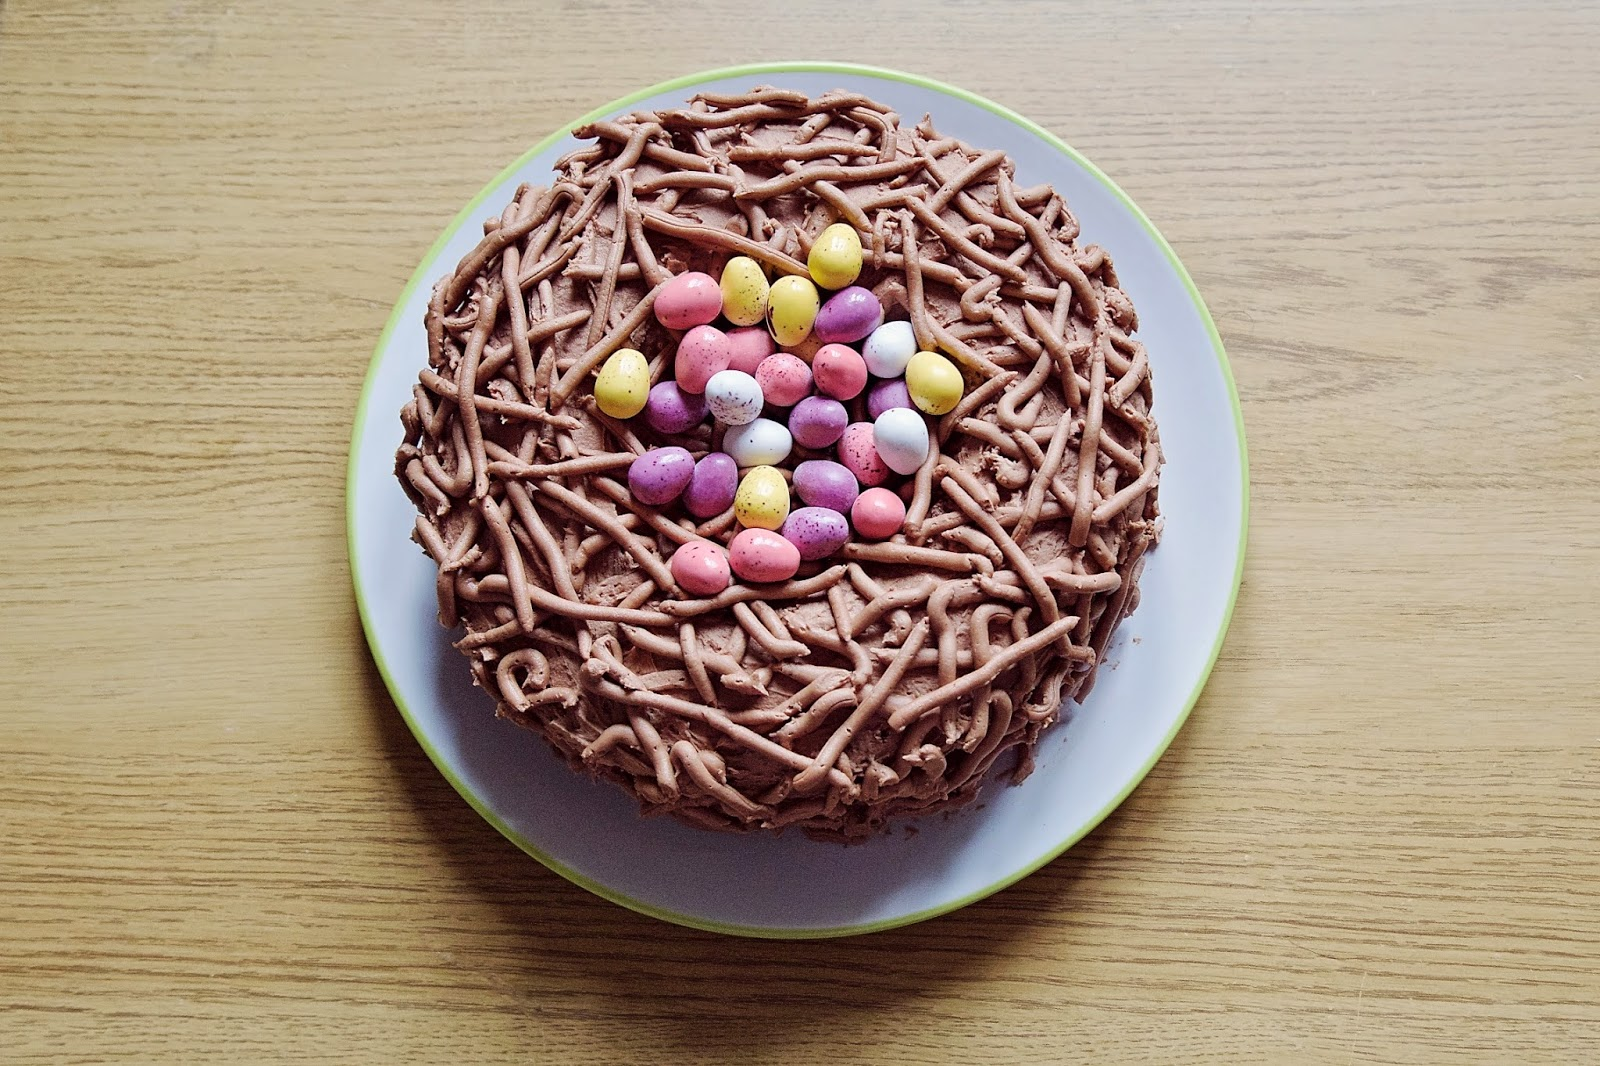 Birdseye View of the Easter nest cake with mini eggs in the centre.